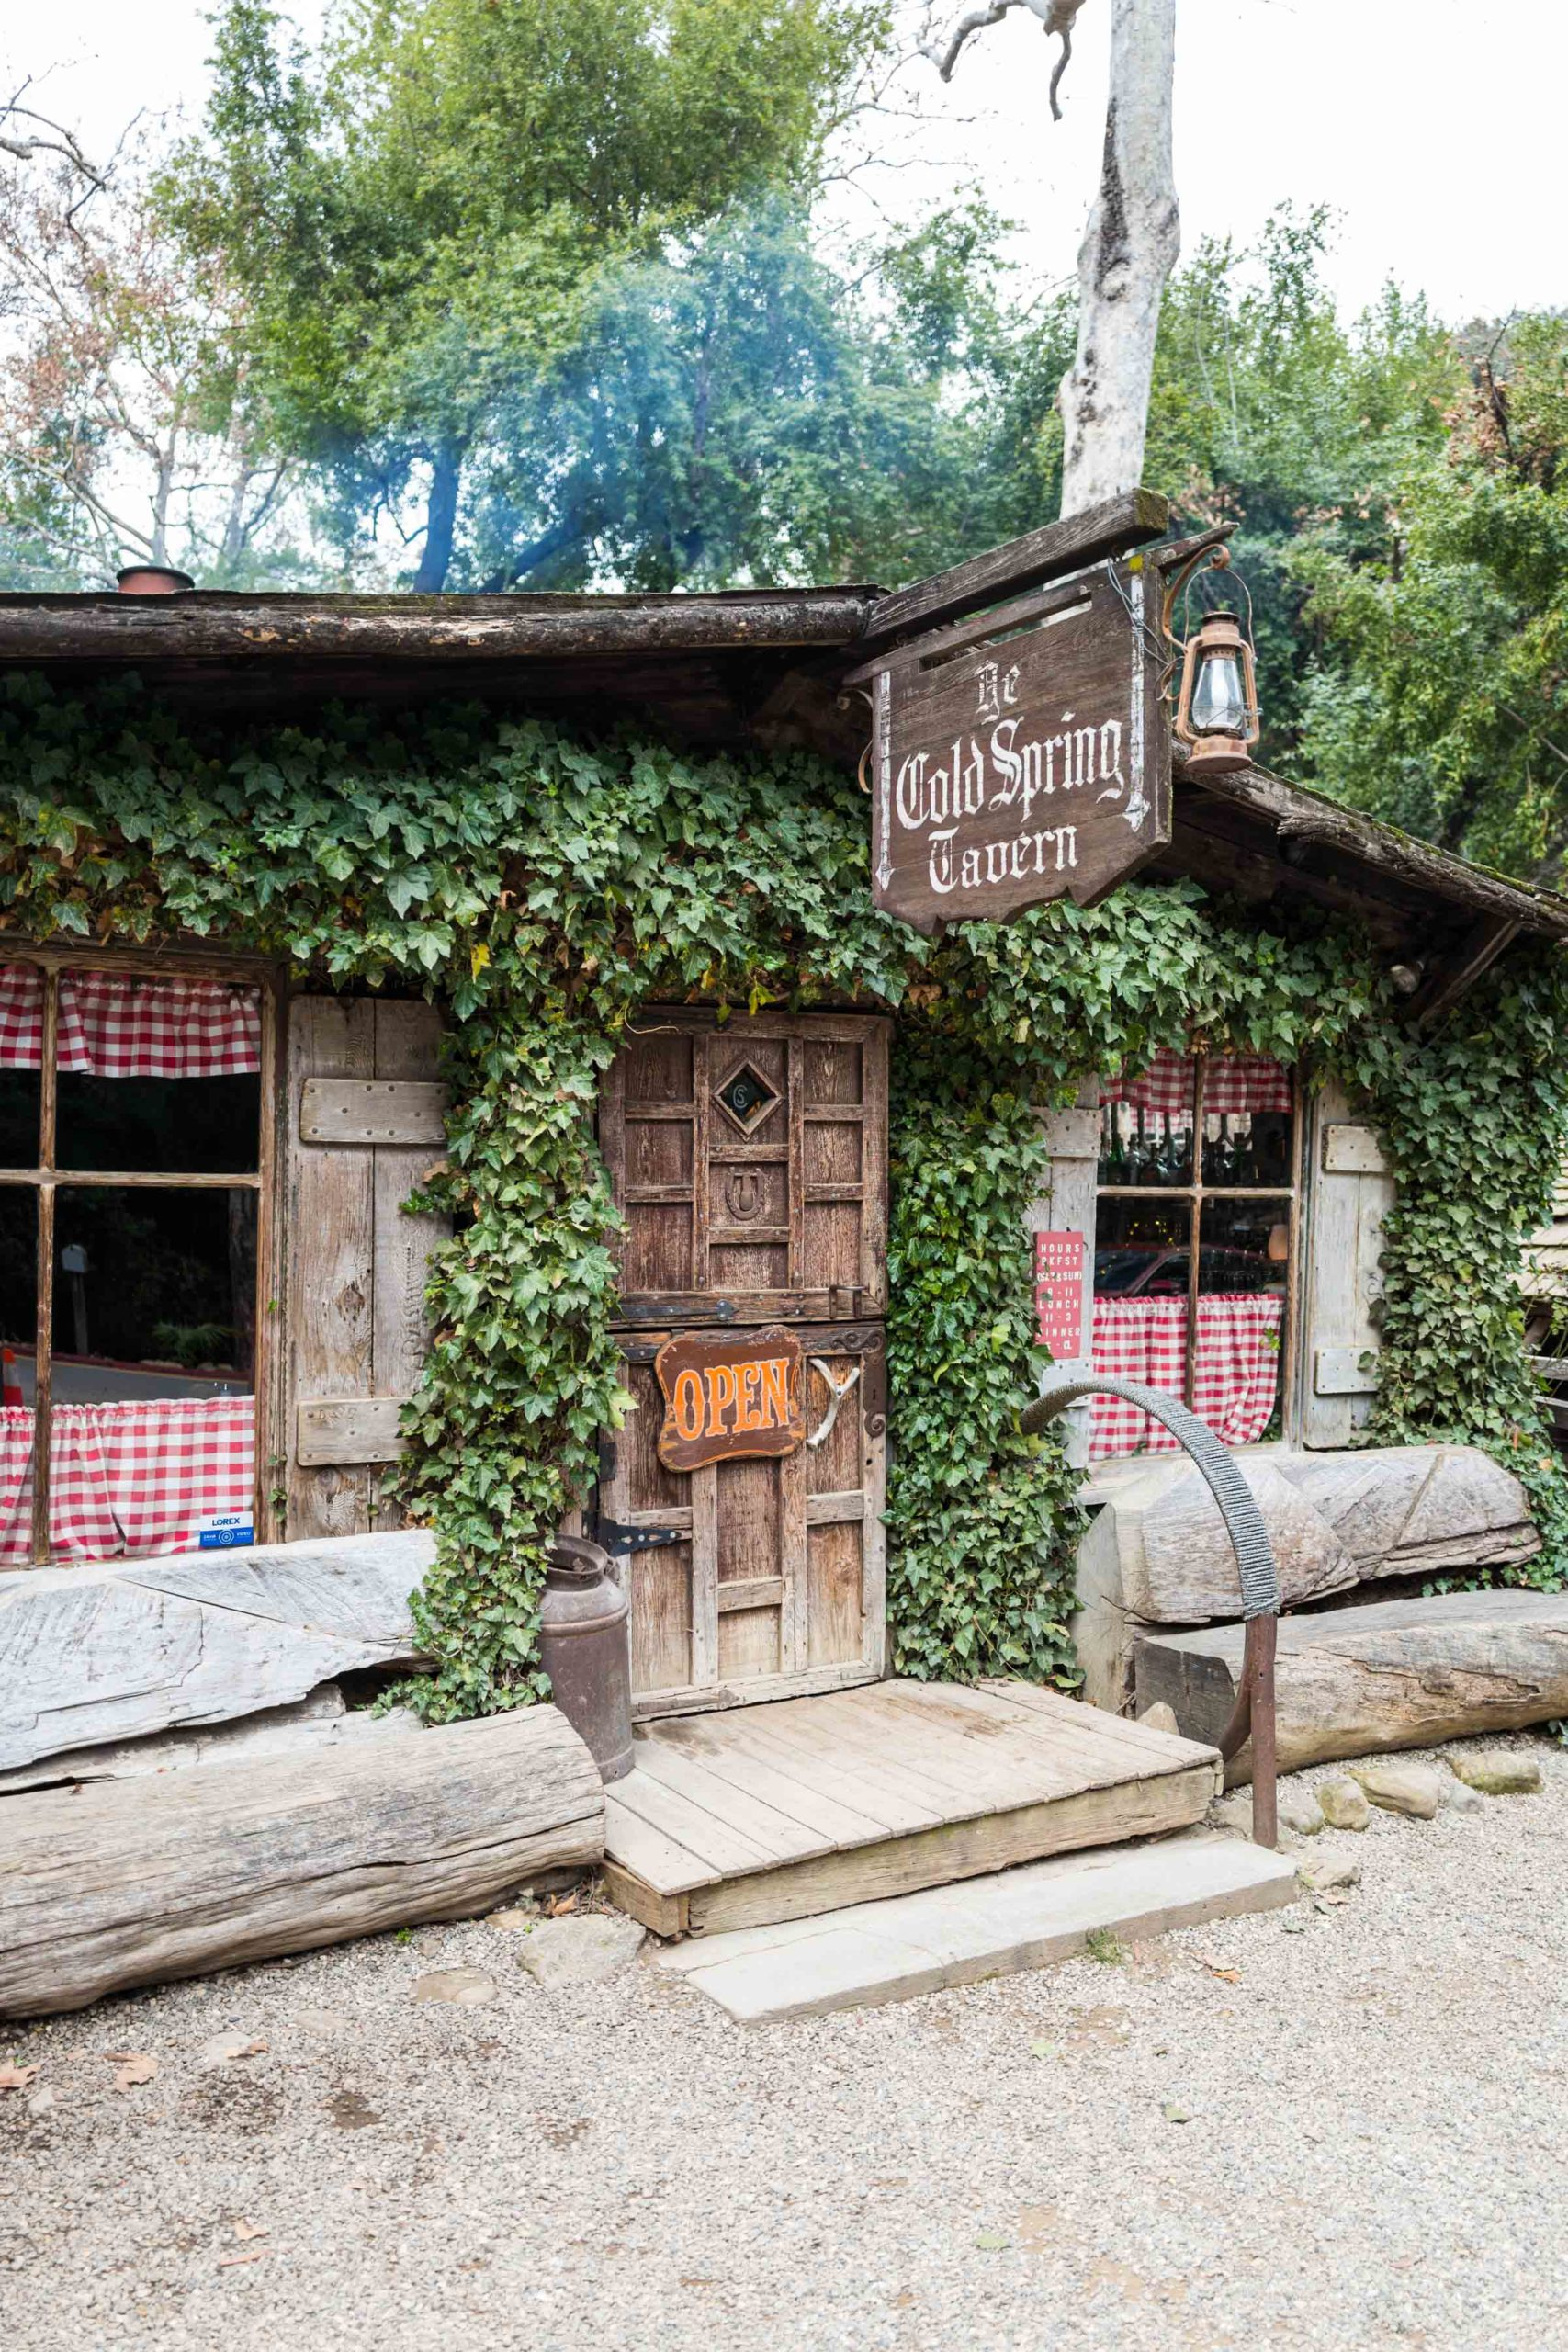 A local must restaurant when you head to Santa Barbara for the weekend - Cold Springs Tavern grilling the best tri tip steak sandwiches #santabarbara #restaurant #travel